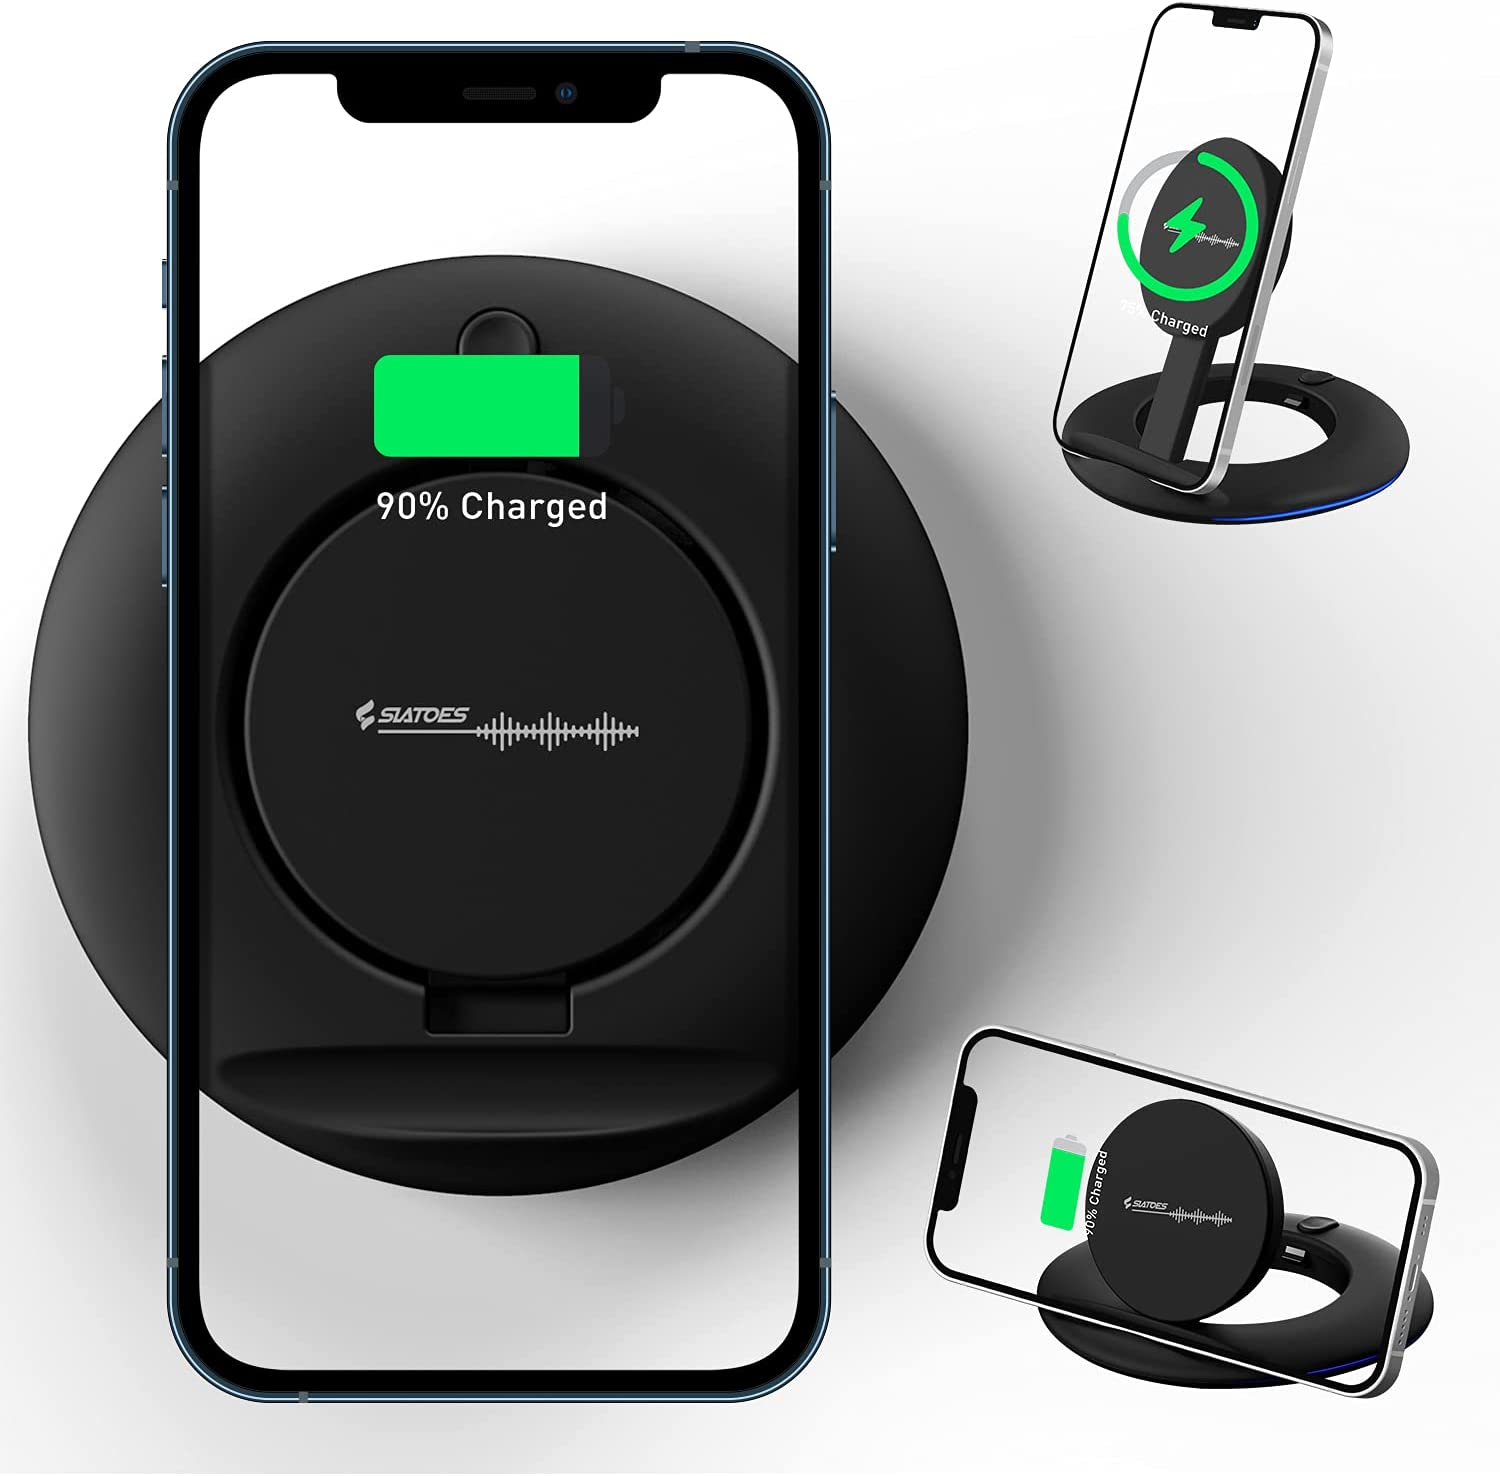 Wireless Charger,Qi-Certified 10W Max Charging Station,Adjustable Fast Wireless Charging Pad Compatible with iPhone 12/12 Mini/12 Pro Max/SE/11 Pro/11 Pro Max/AirPods/Note 10,Galaxy S20(No AC Adapter)